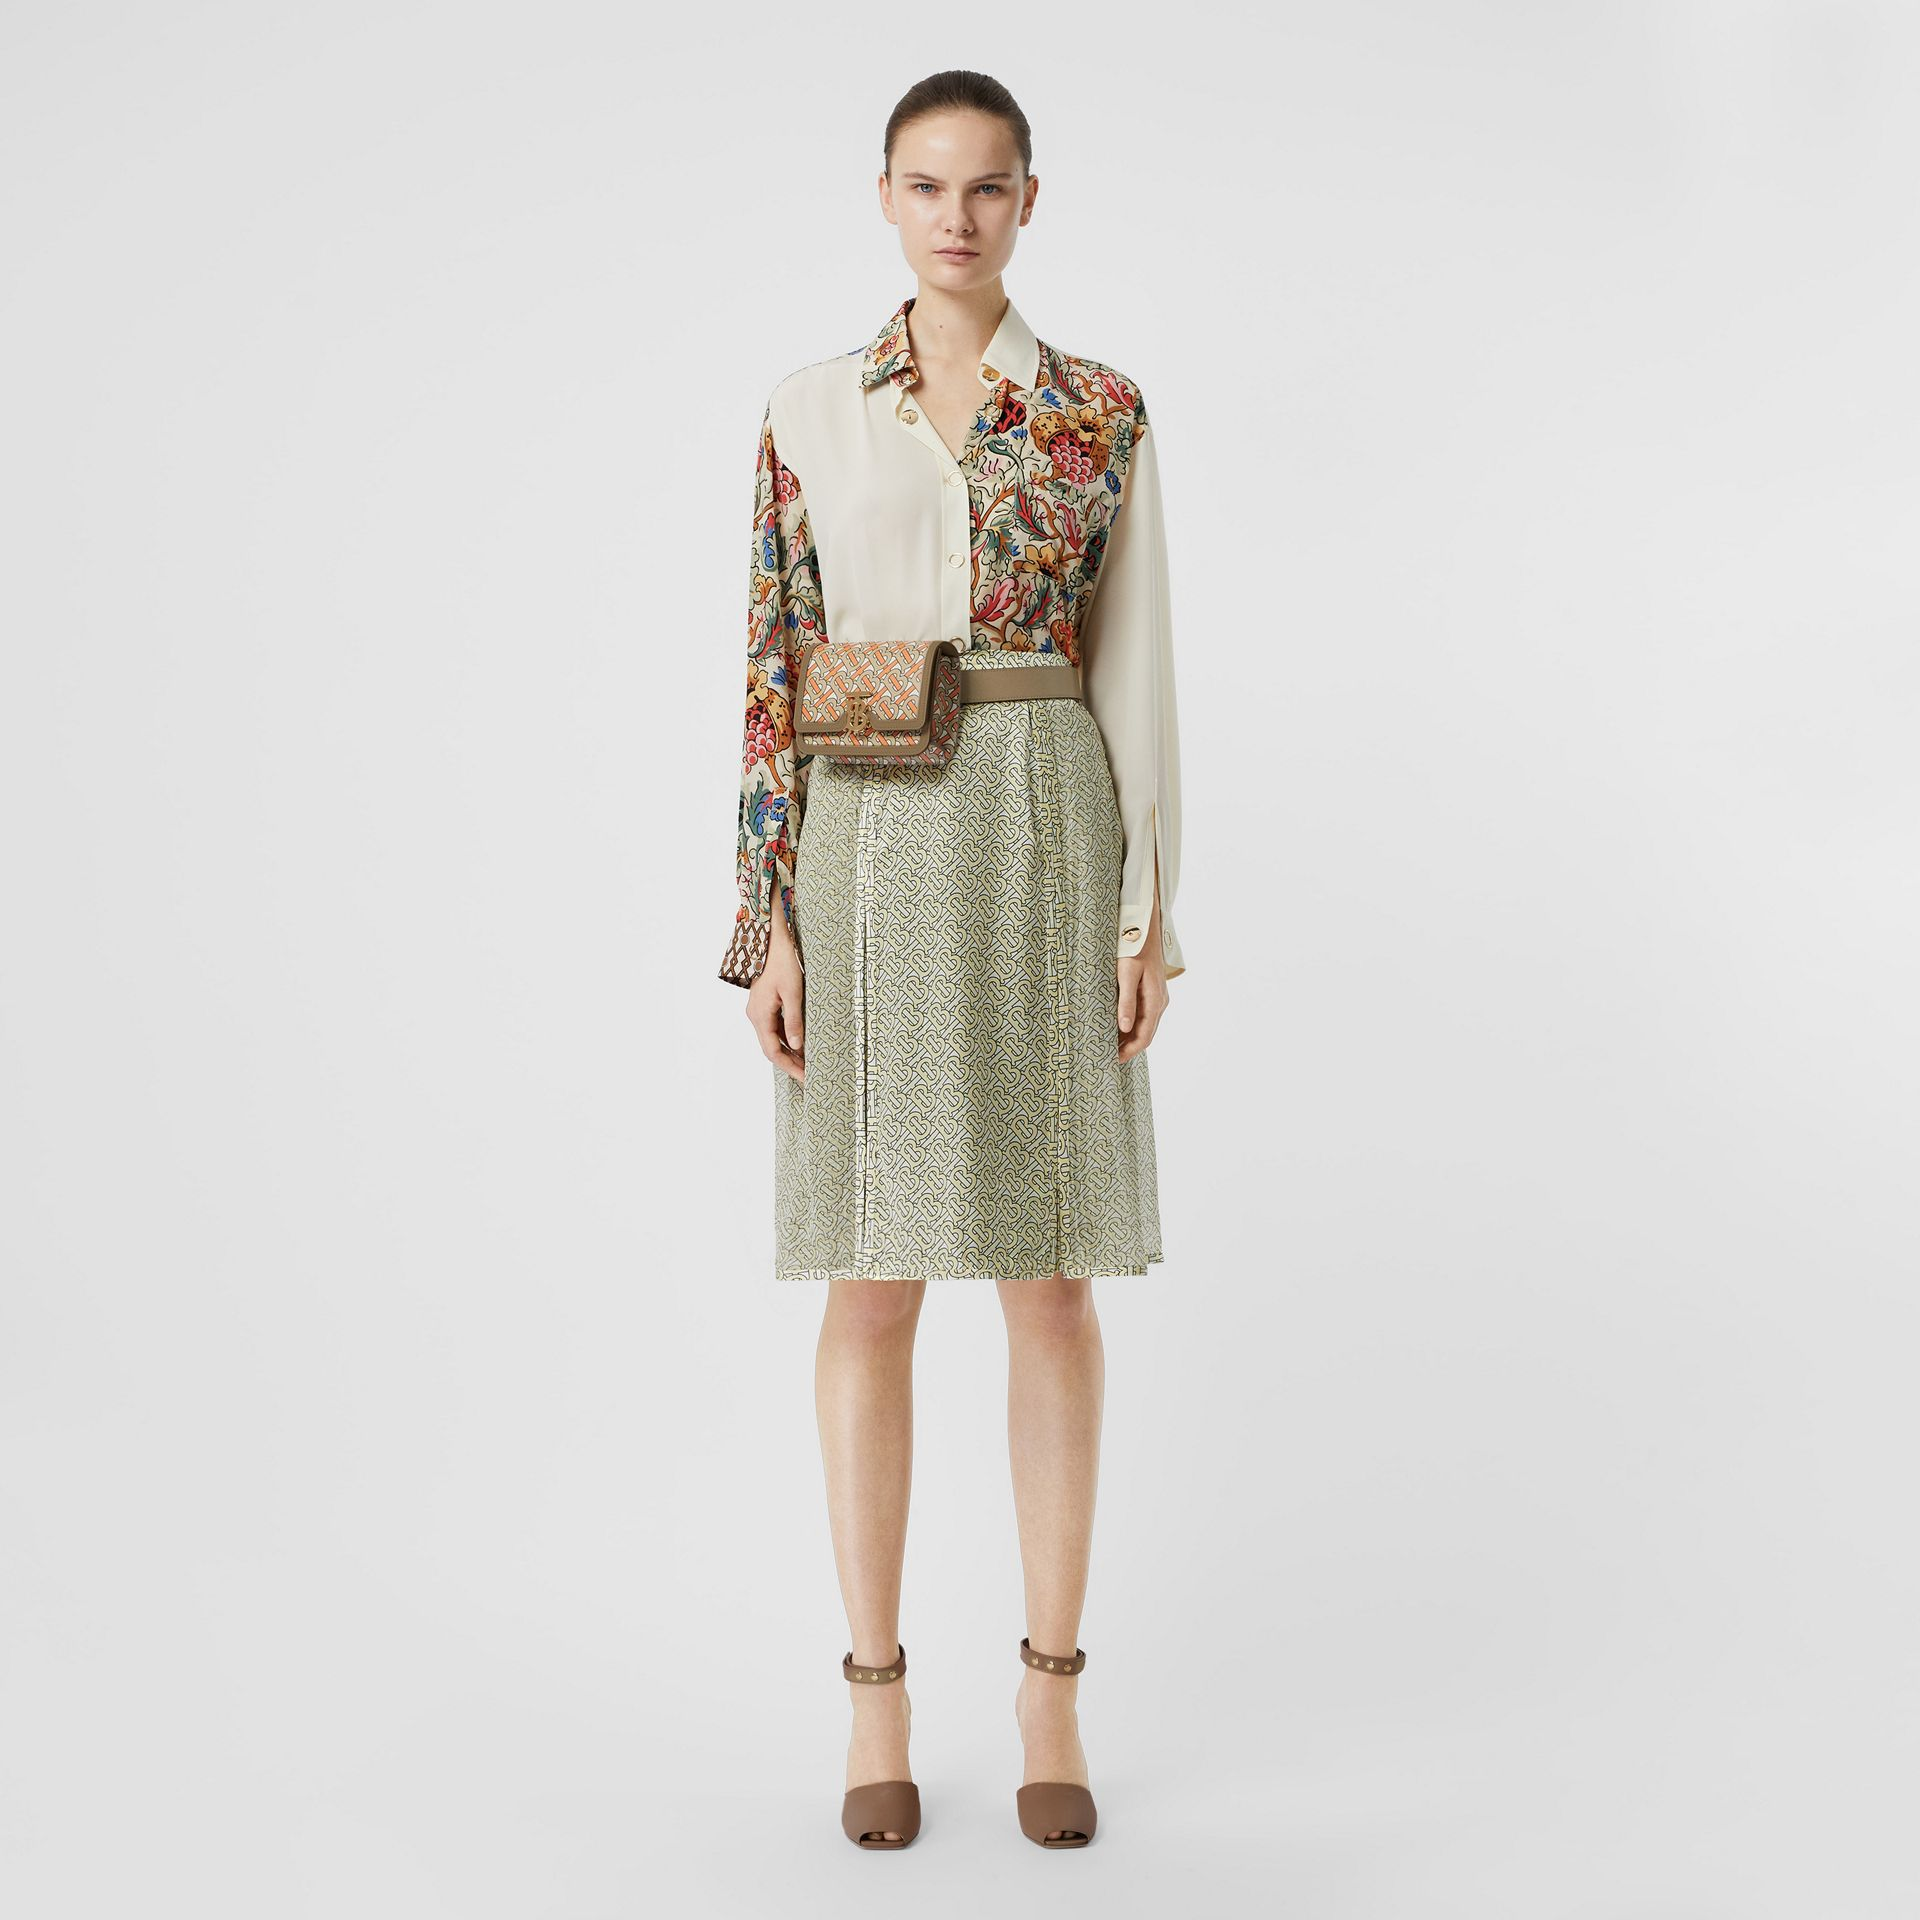 Floral Print Panel Silk Shirt in Vanilla - Women | Burberry - gallery image 5